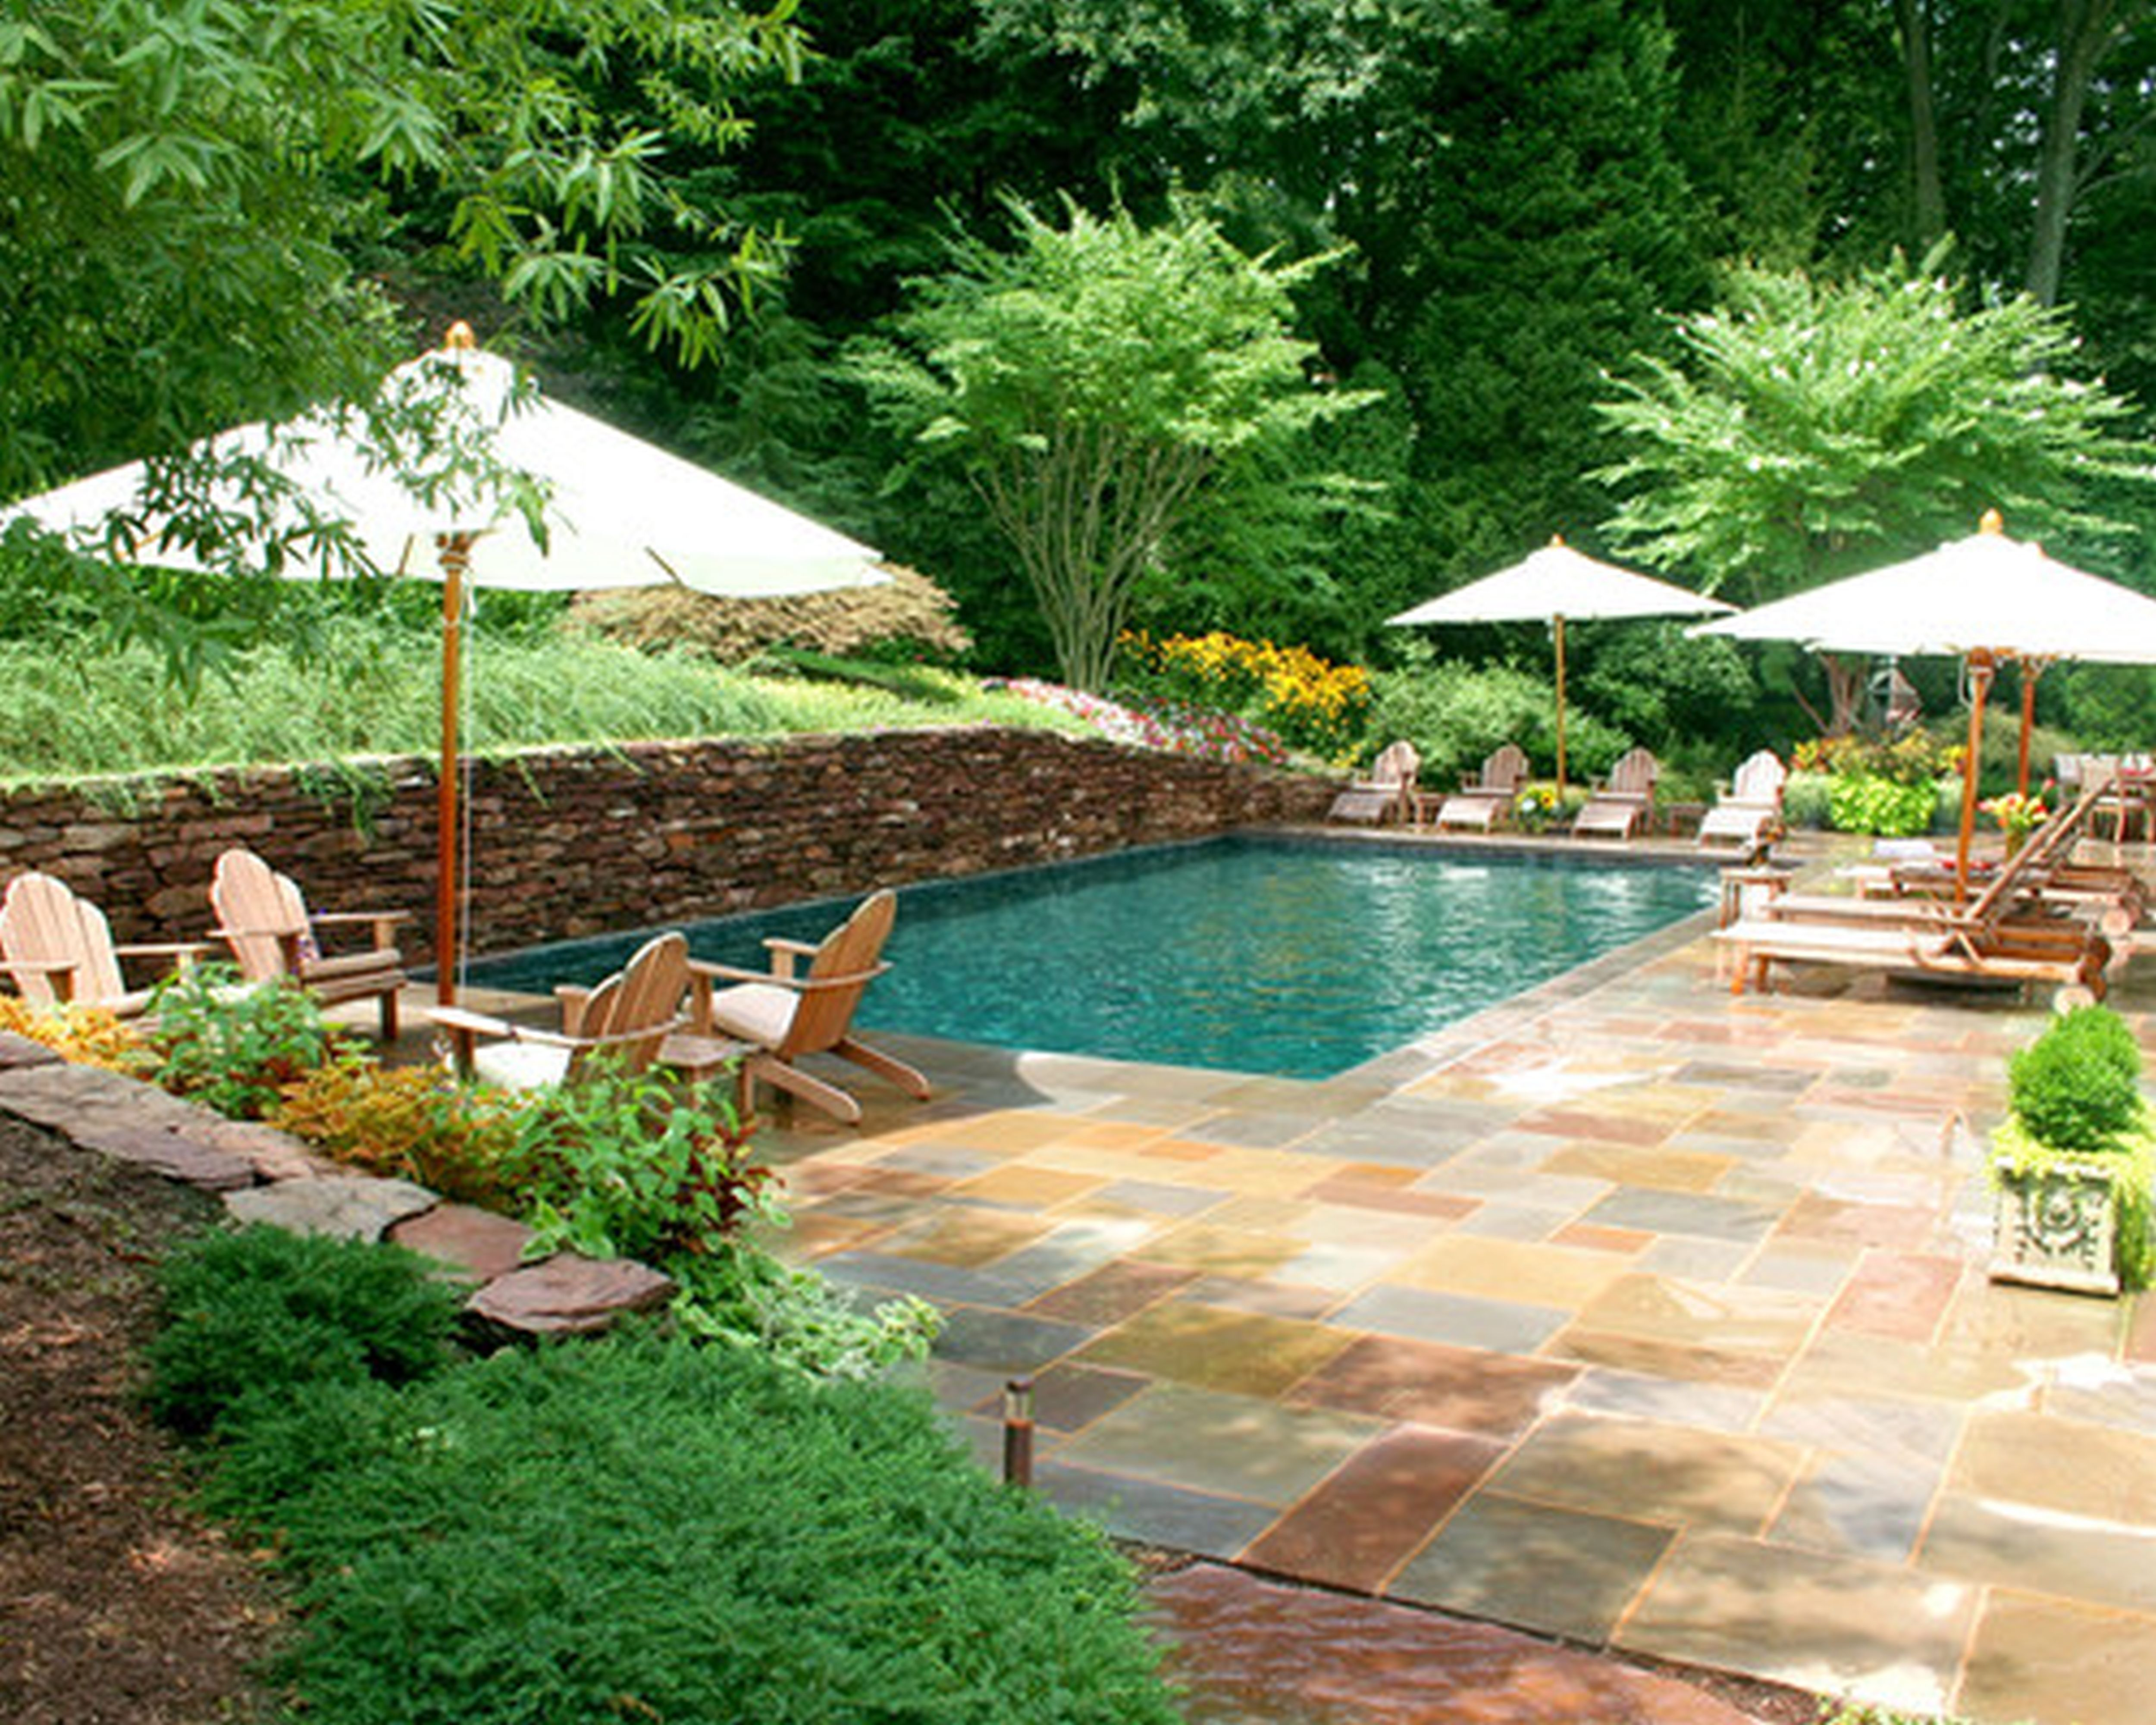 Designing your backyard swimming pool part i of ii for Backyard pool ideas pictures